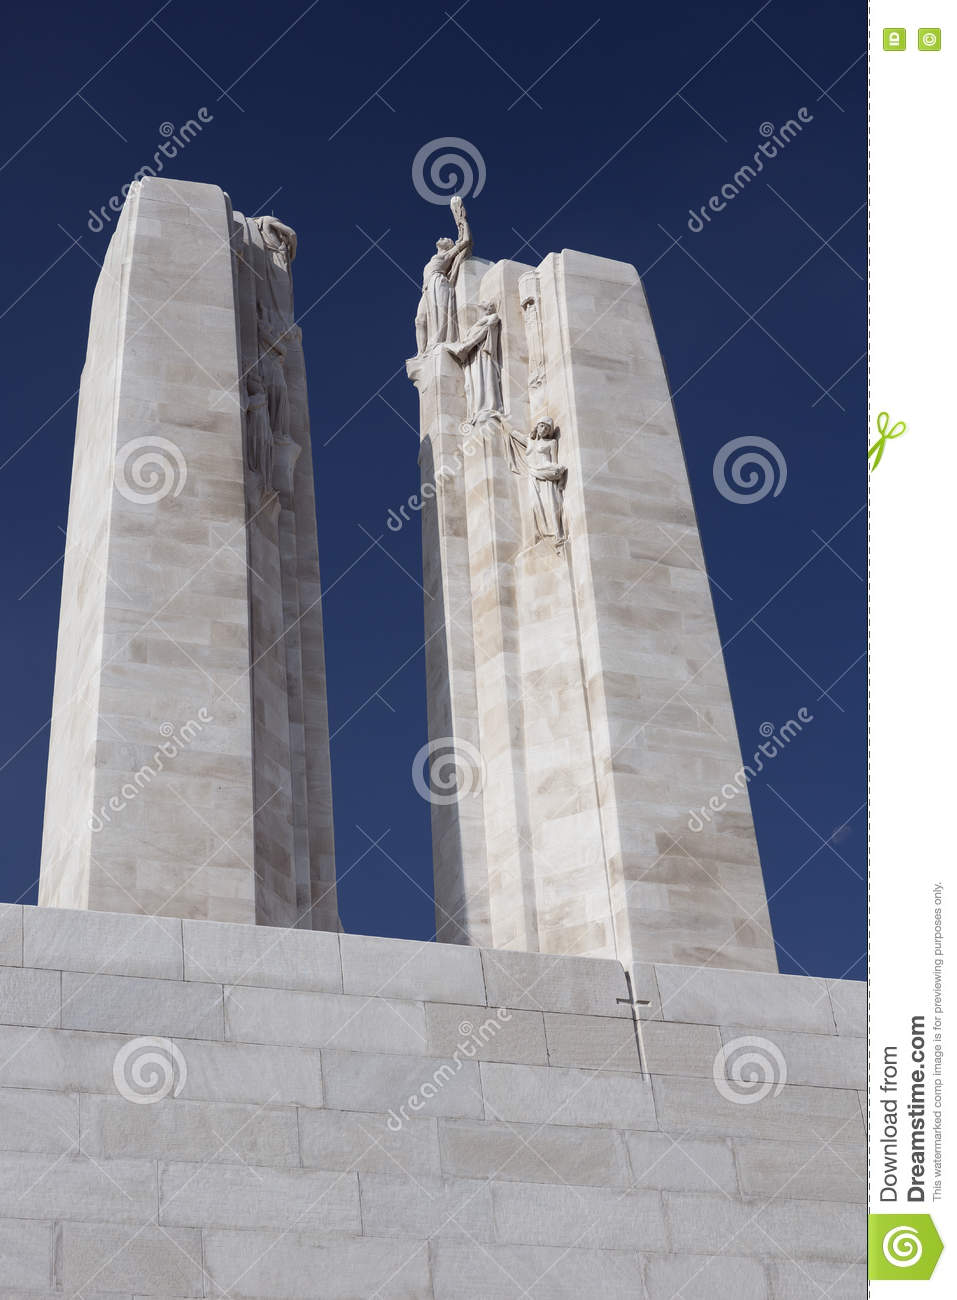 vimy ridge commemoration speech It argues that the meaning of vimy ridge and the memorial within canadian  culture has  during his speech at the ceremony, king edward emphasized the.